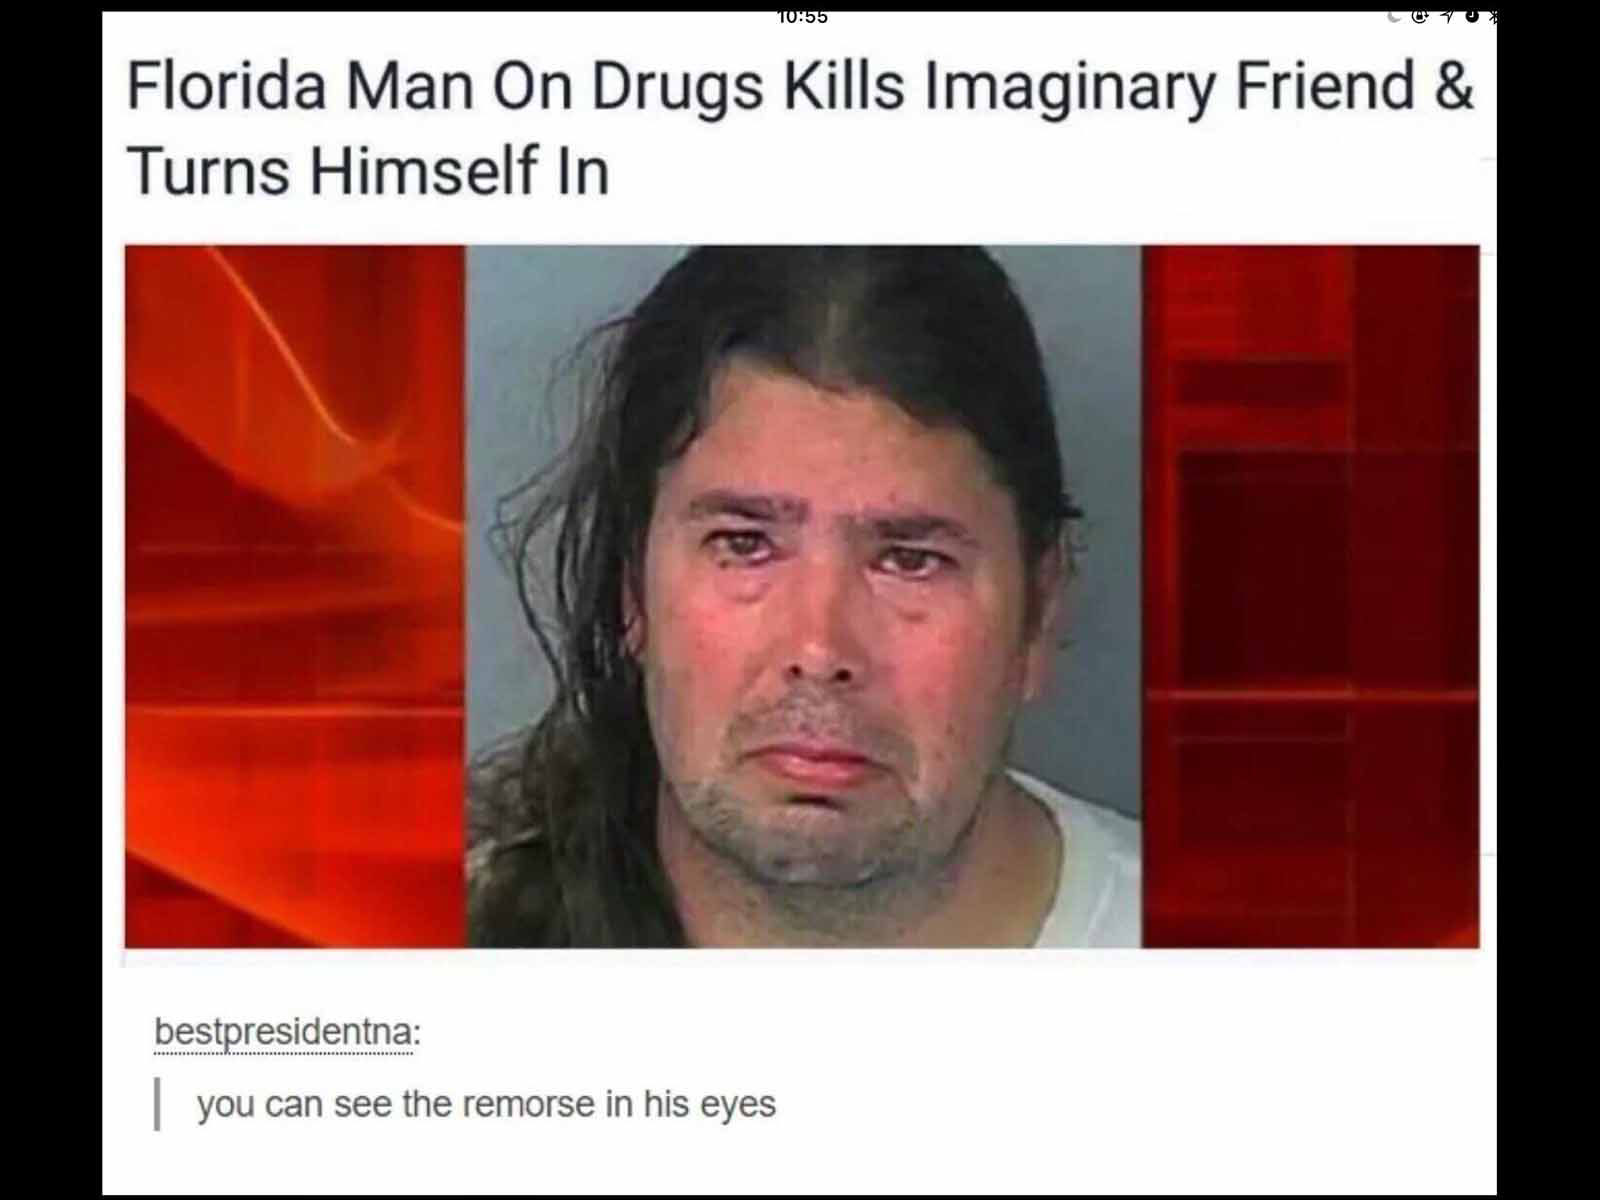 Florida Man, an elusive creature we're not sure we'll ever understand. But we're going to laugh our butts off at these Florida Man memes anyway.